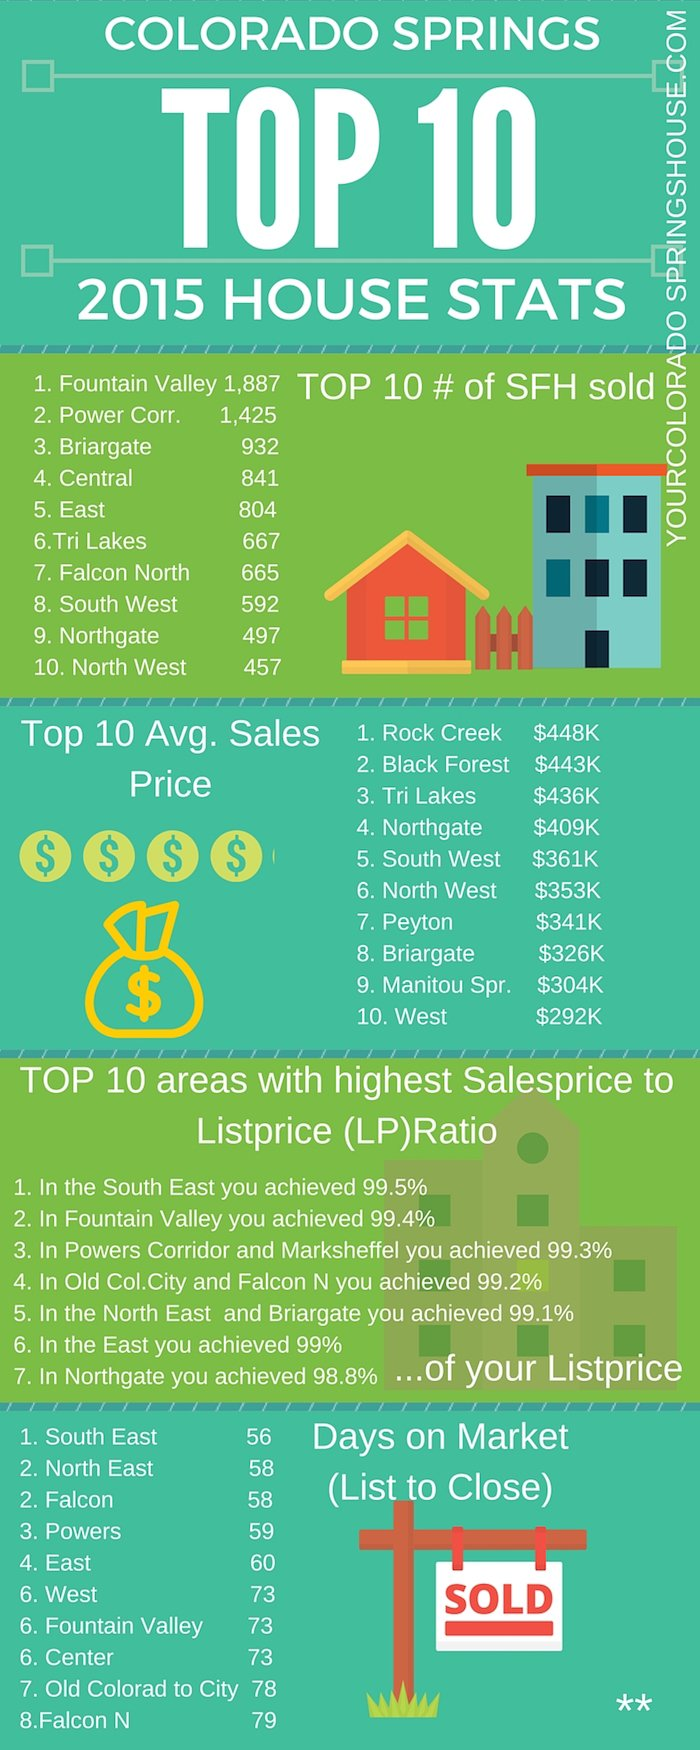 HOme Sales in Colorado Springs in 2015